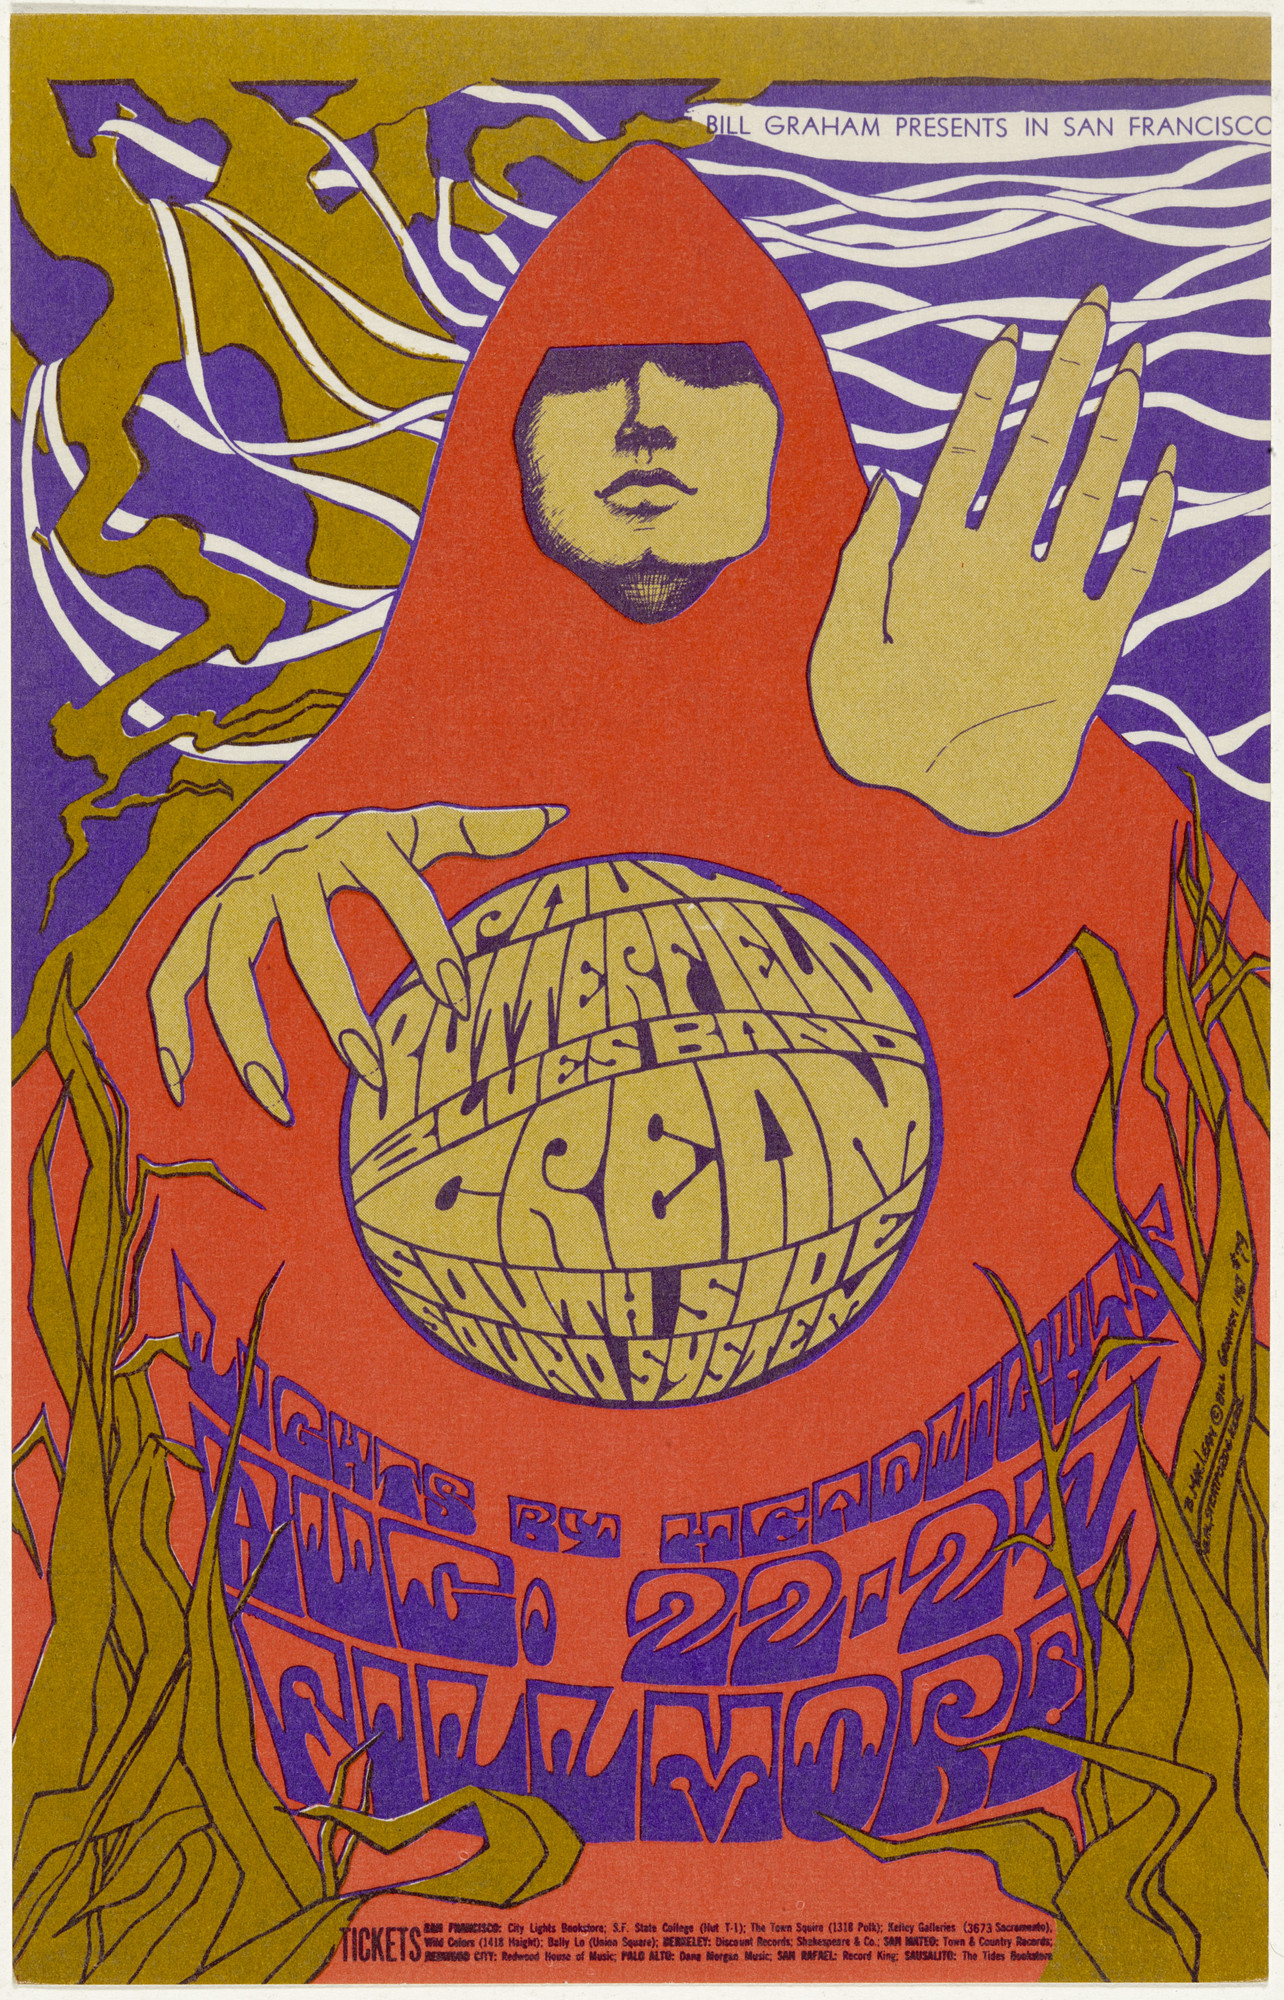 Bonnie Maclean. Paul Butterfield Blues Band, Cream, South Side Sound System. 1967